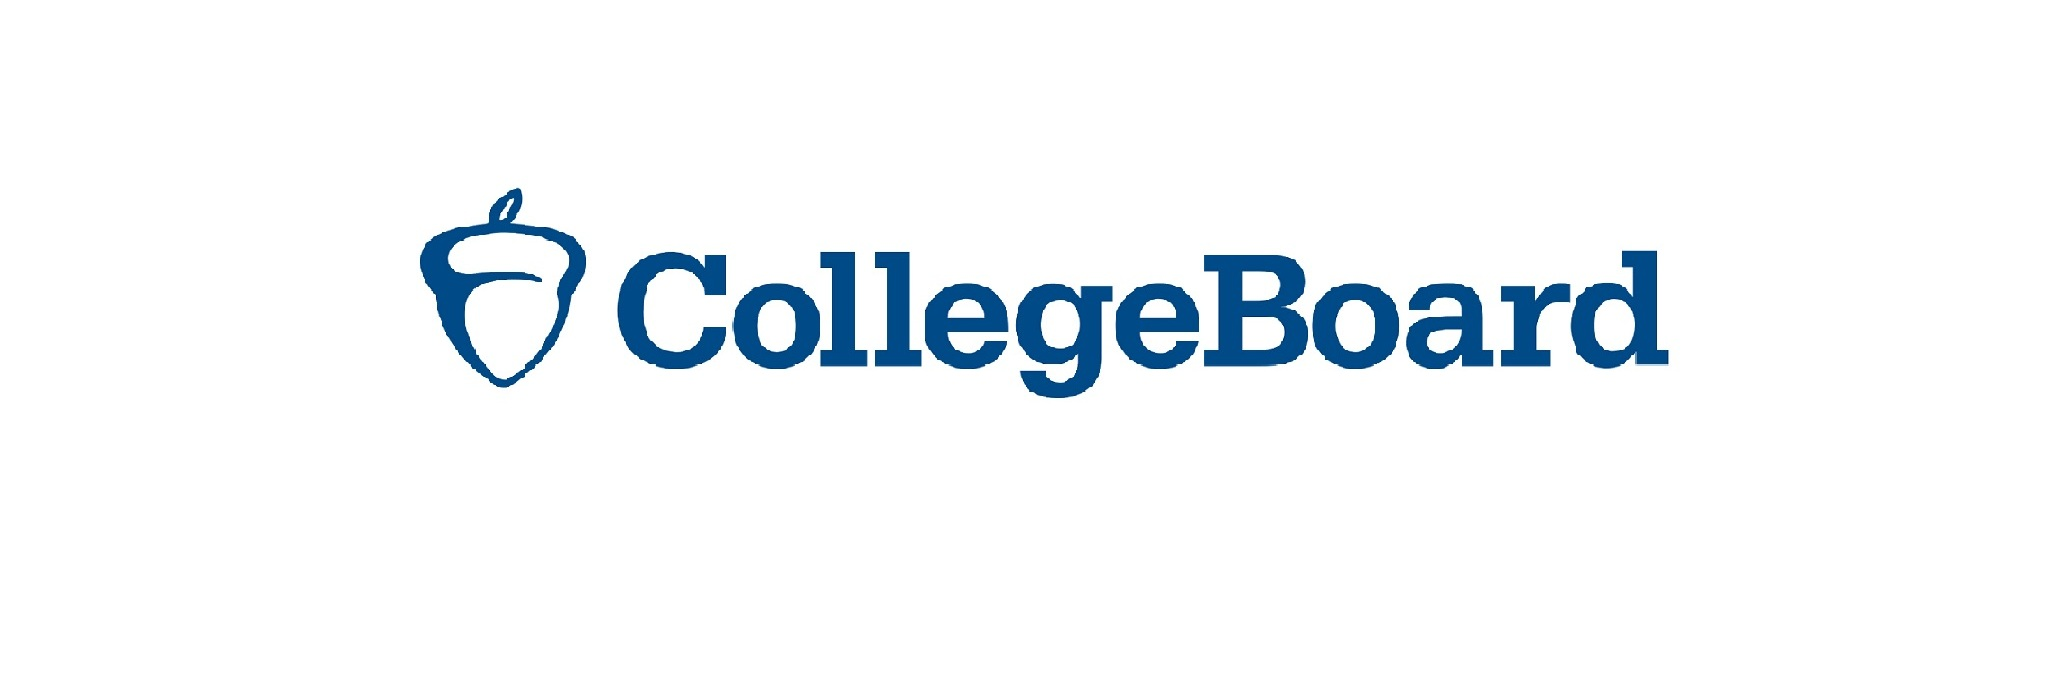 college board Learn how to get your sat scores, send score reports to colleges, and understand what your score report means.